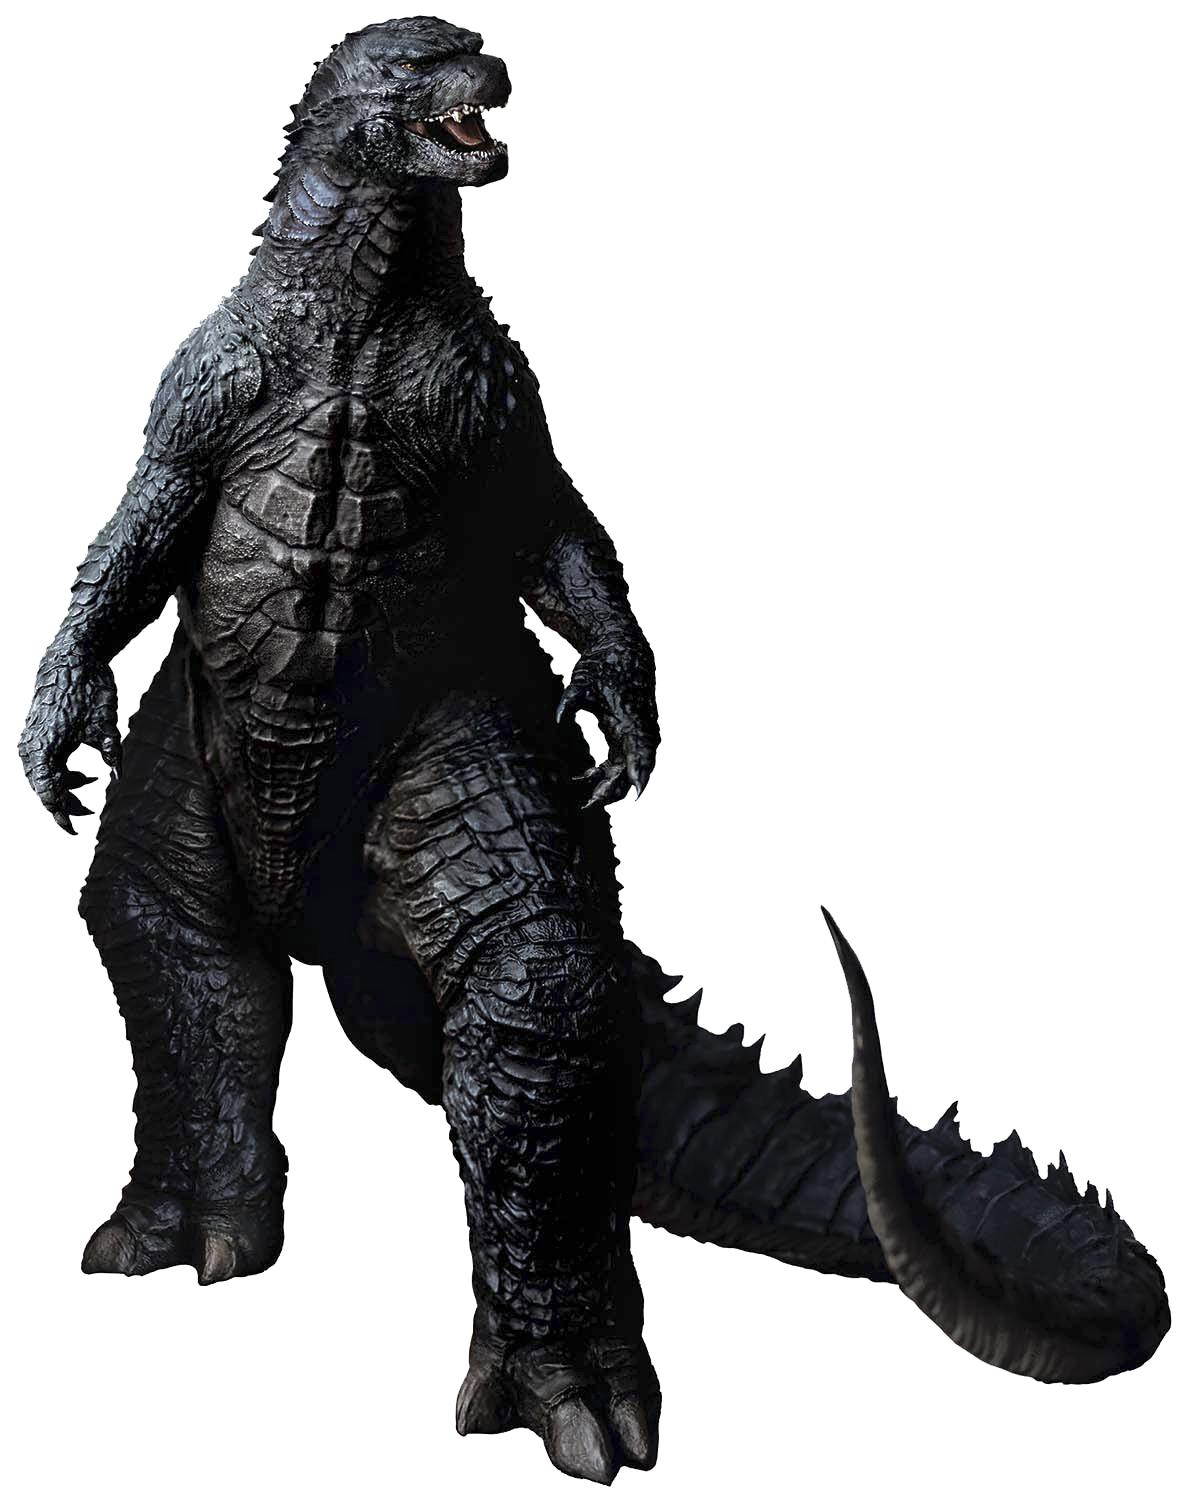 Godzilla clipart suit Advertisement PNG Images Godzilla All